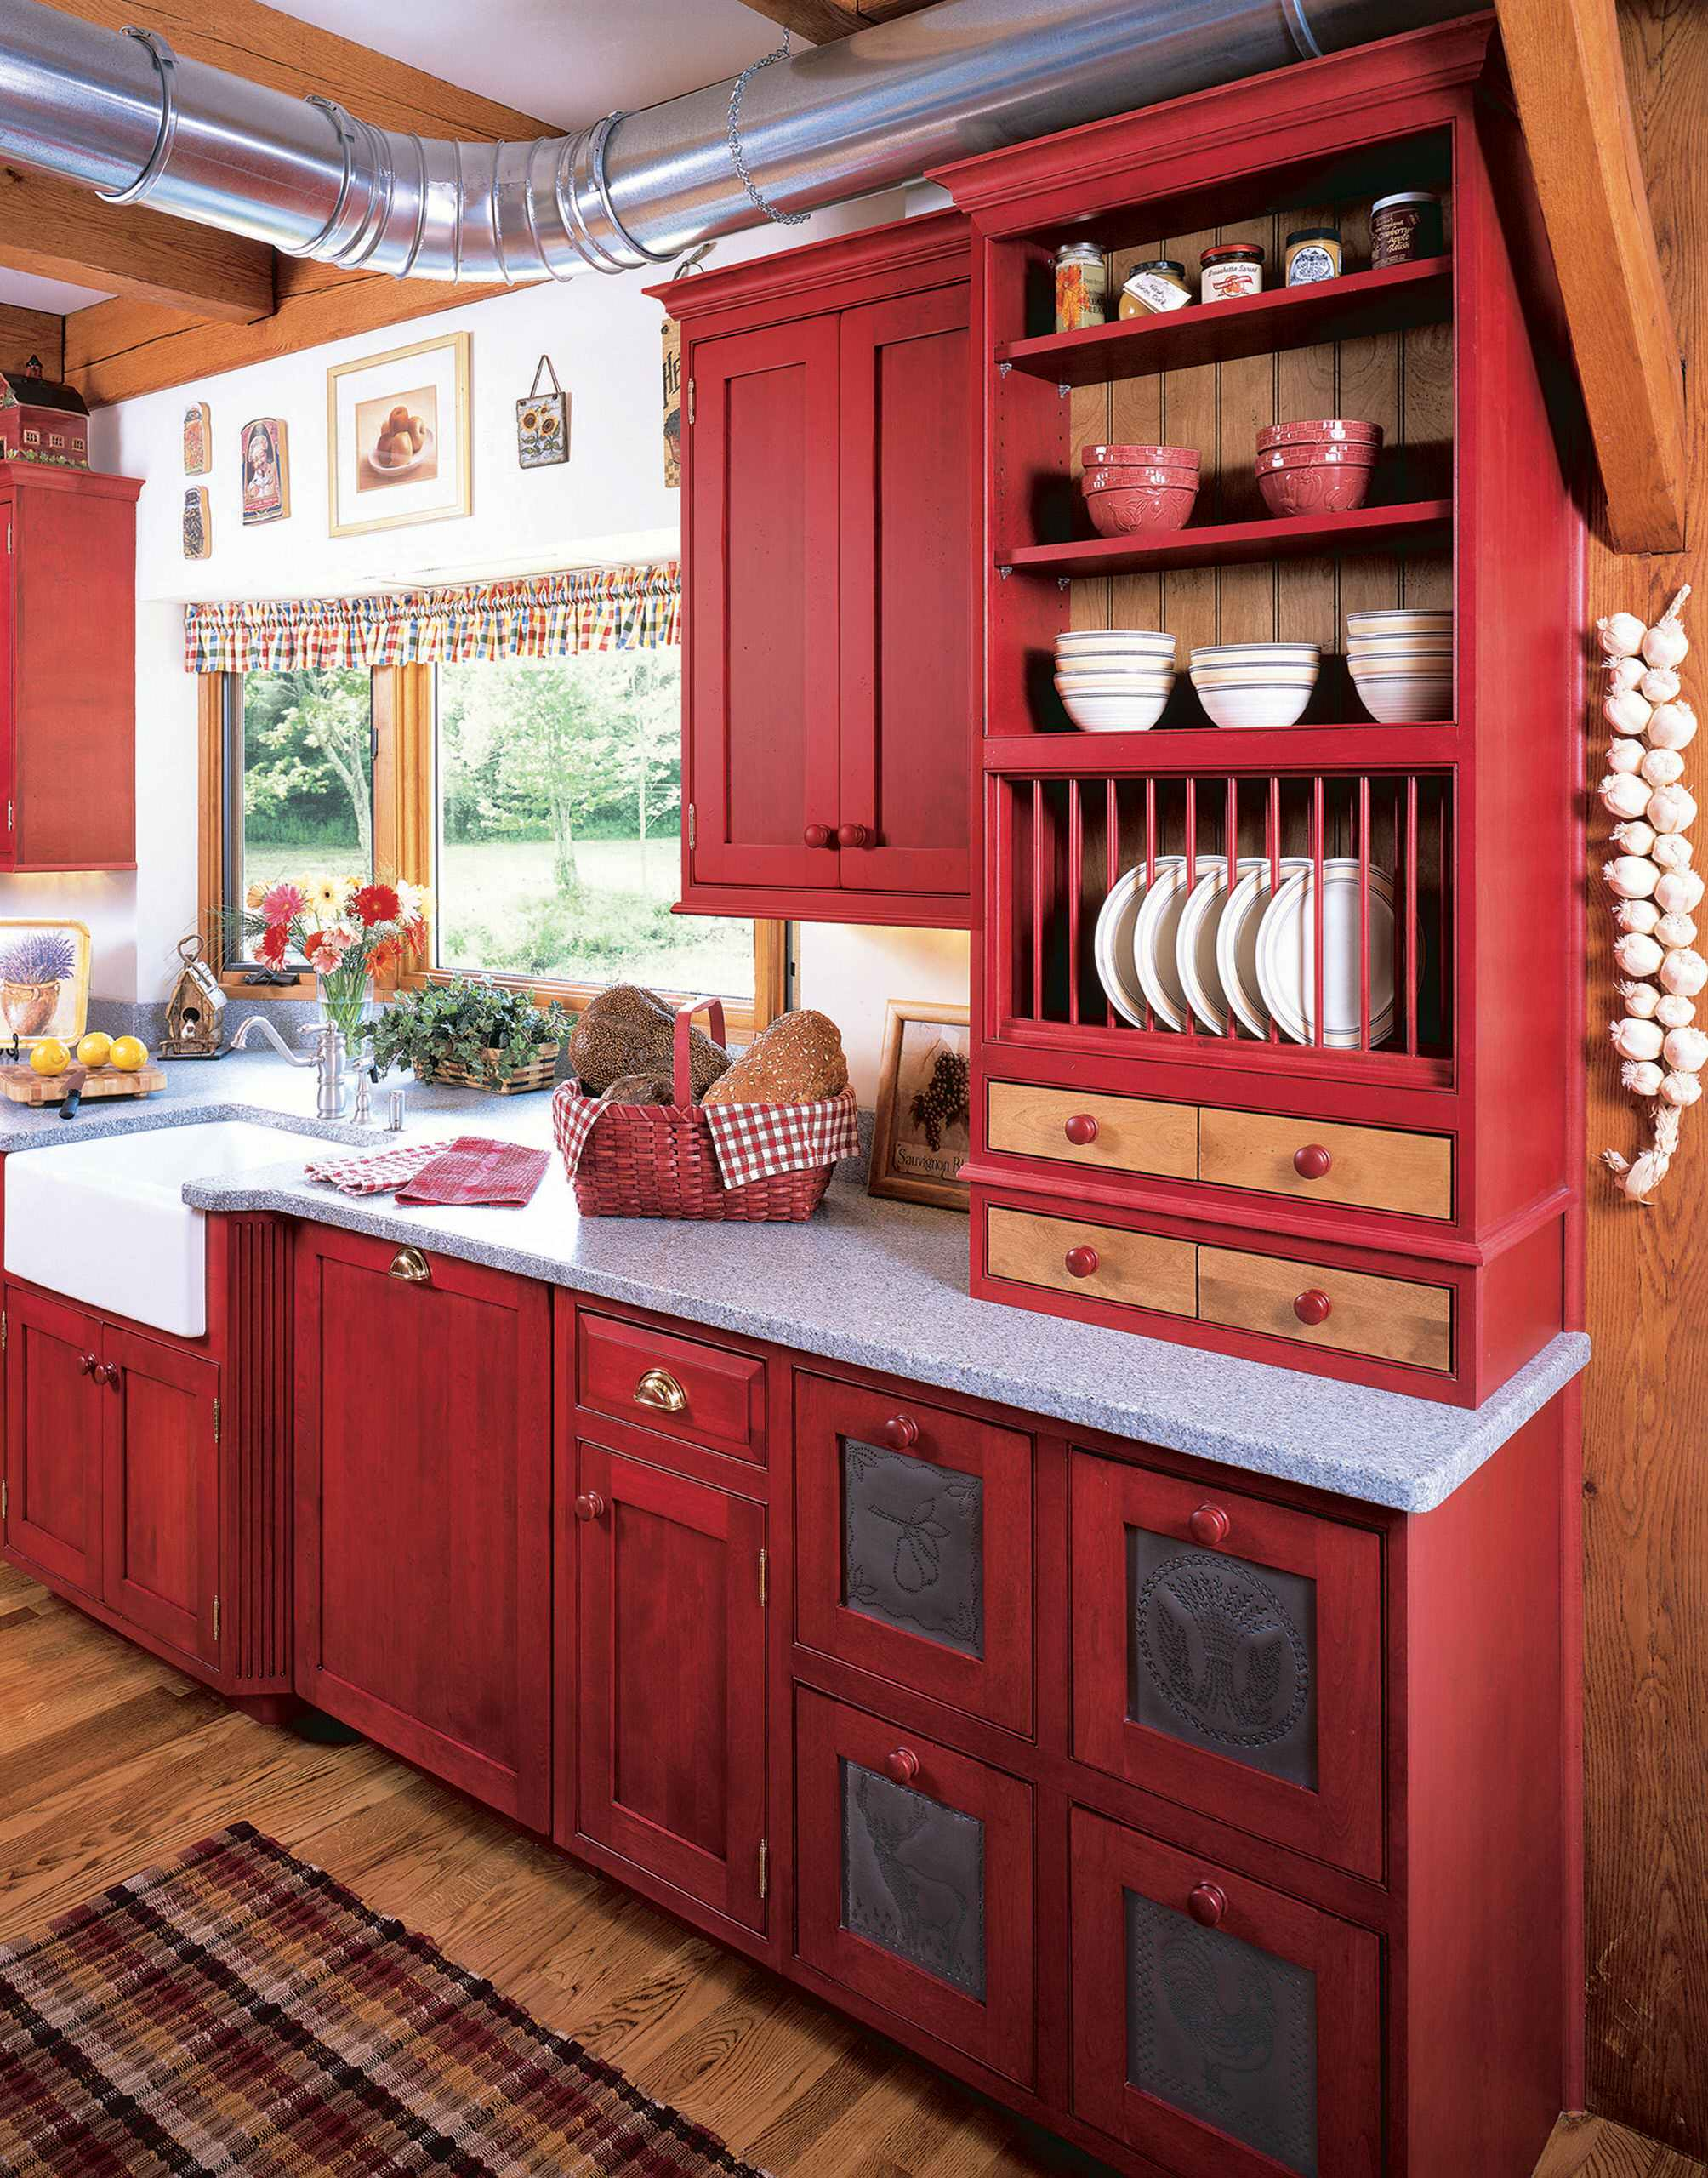 4 Beautiful Kitchen With Red Cabinets Pictures & Ideas - November